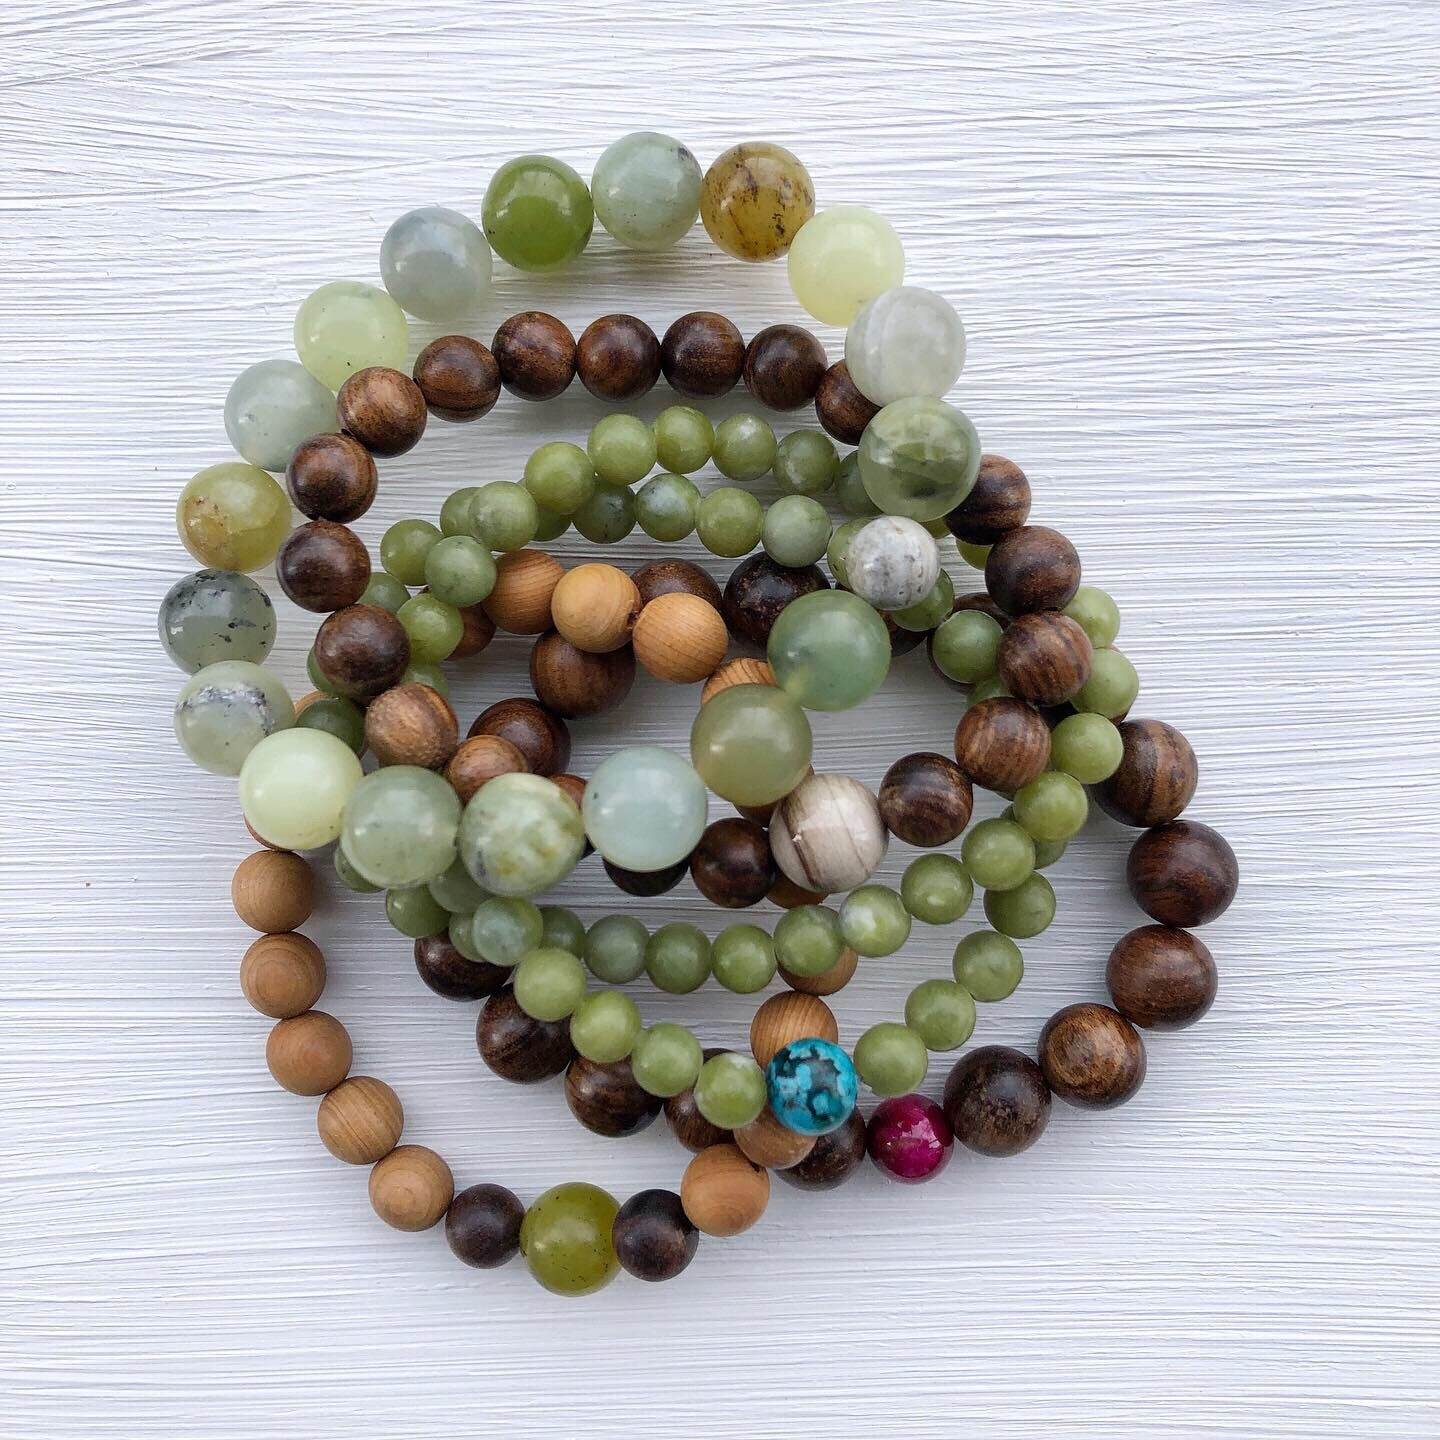 Handmade mala bracelets for yogis and boyfriends